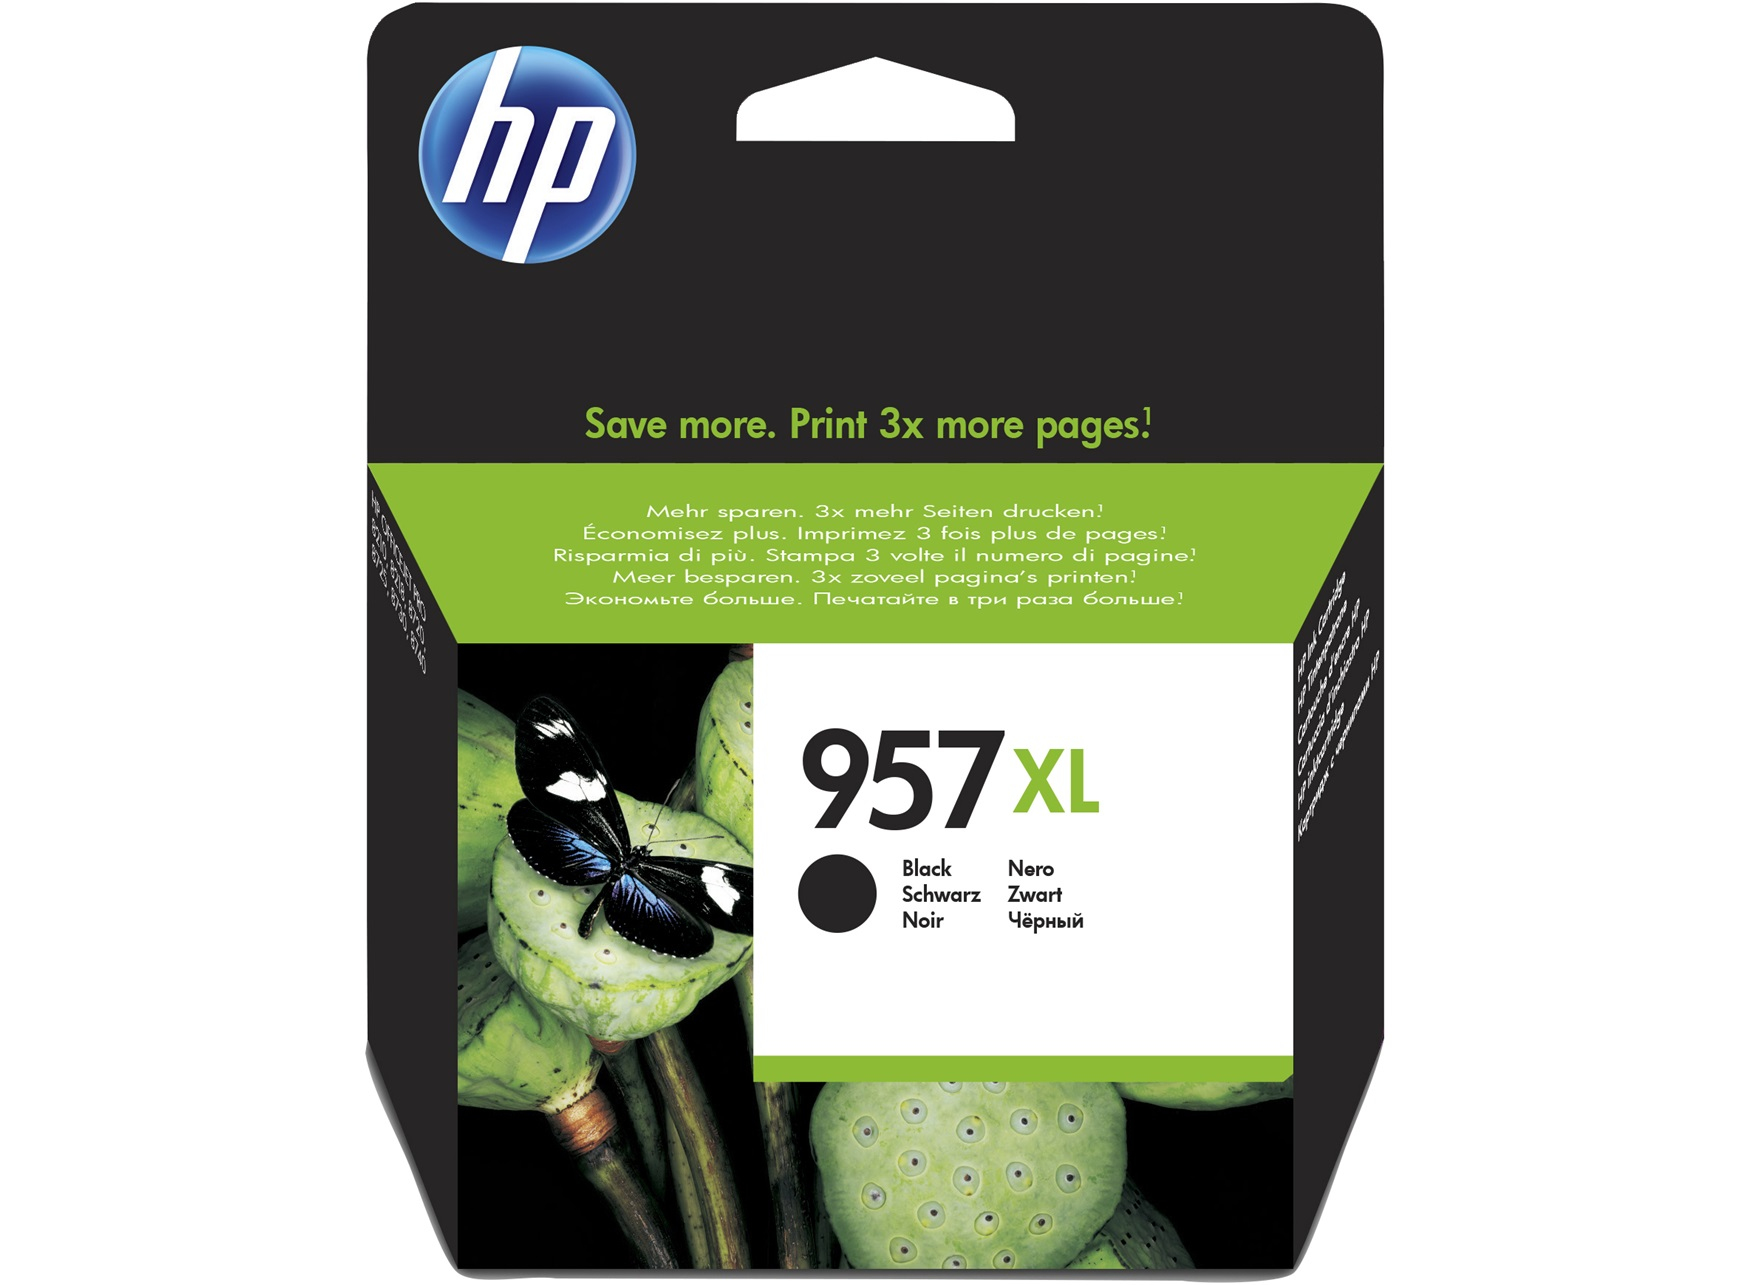 HP 957XL Black Original Ink Cartridge Negro